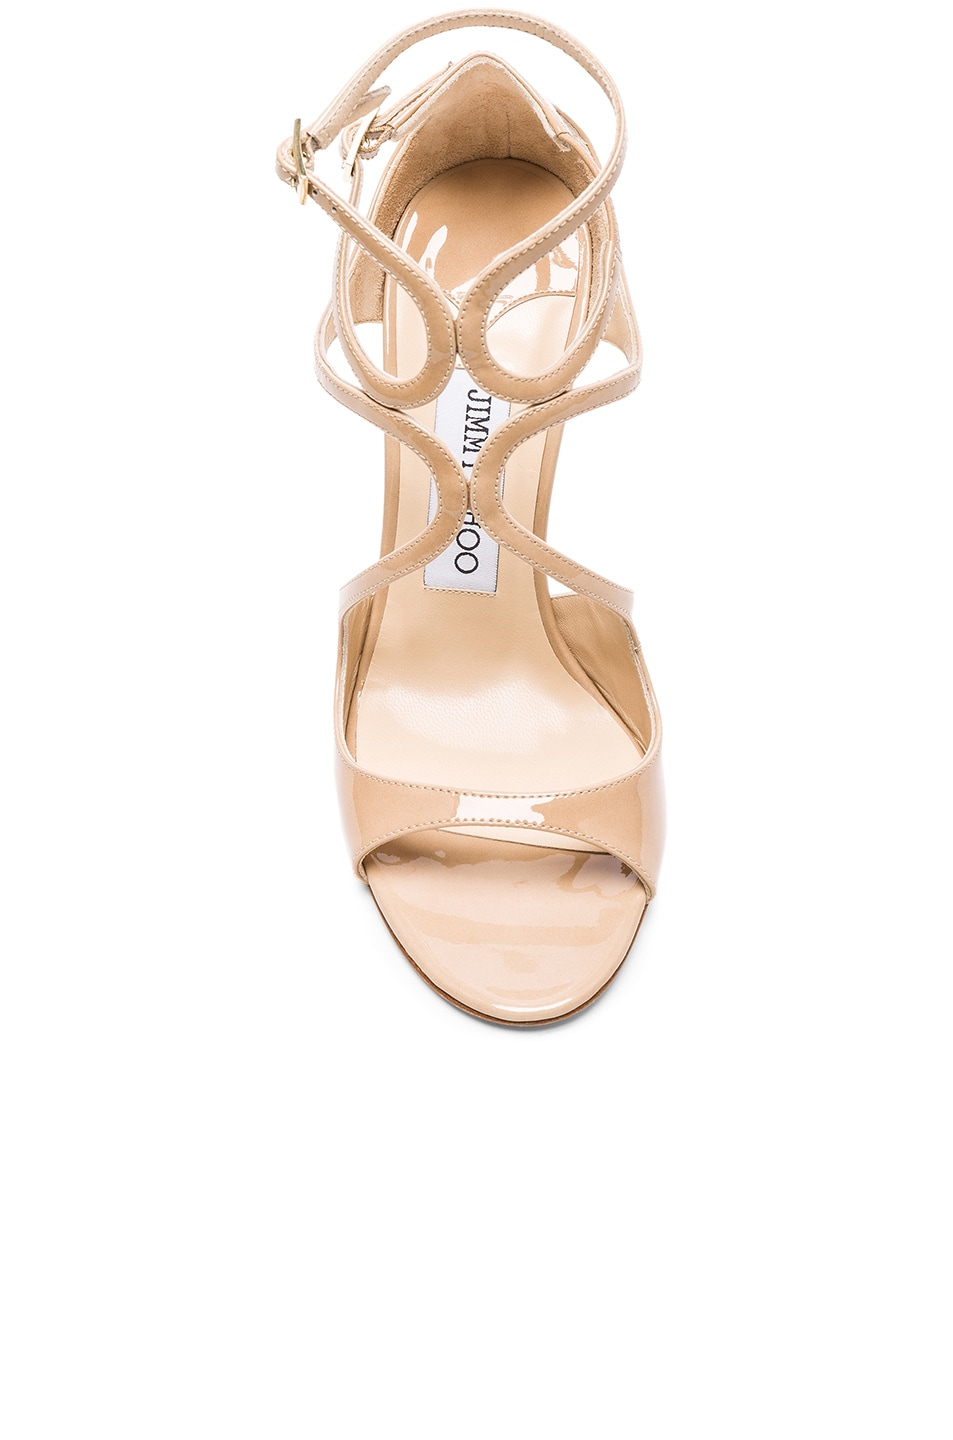 Image 4 of Jimmy Choo Patent Leather Lang Heels in Nude